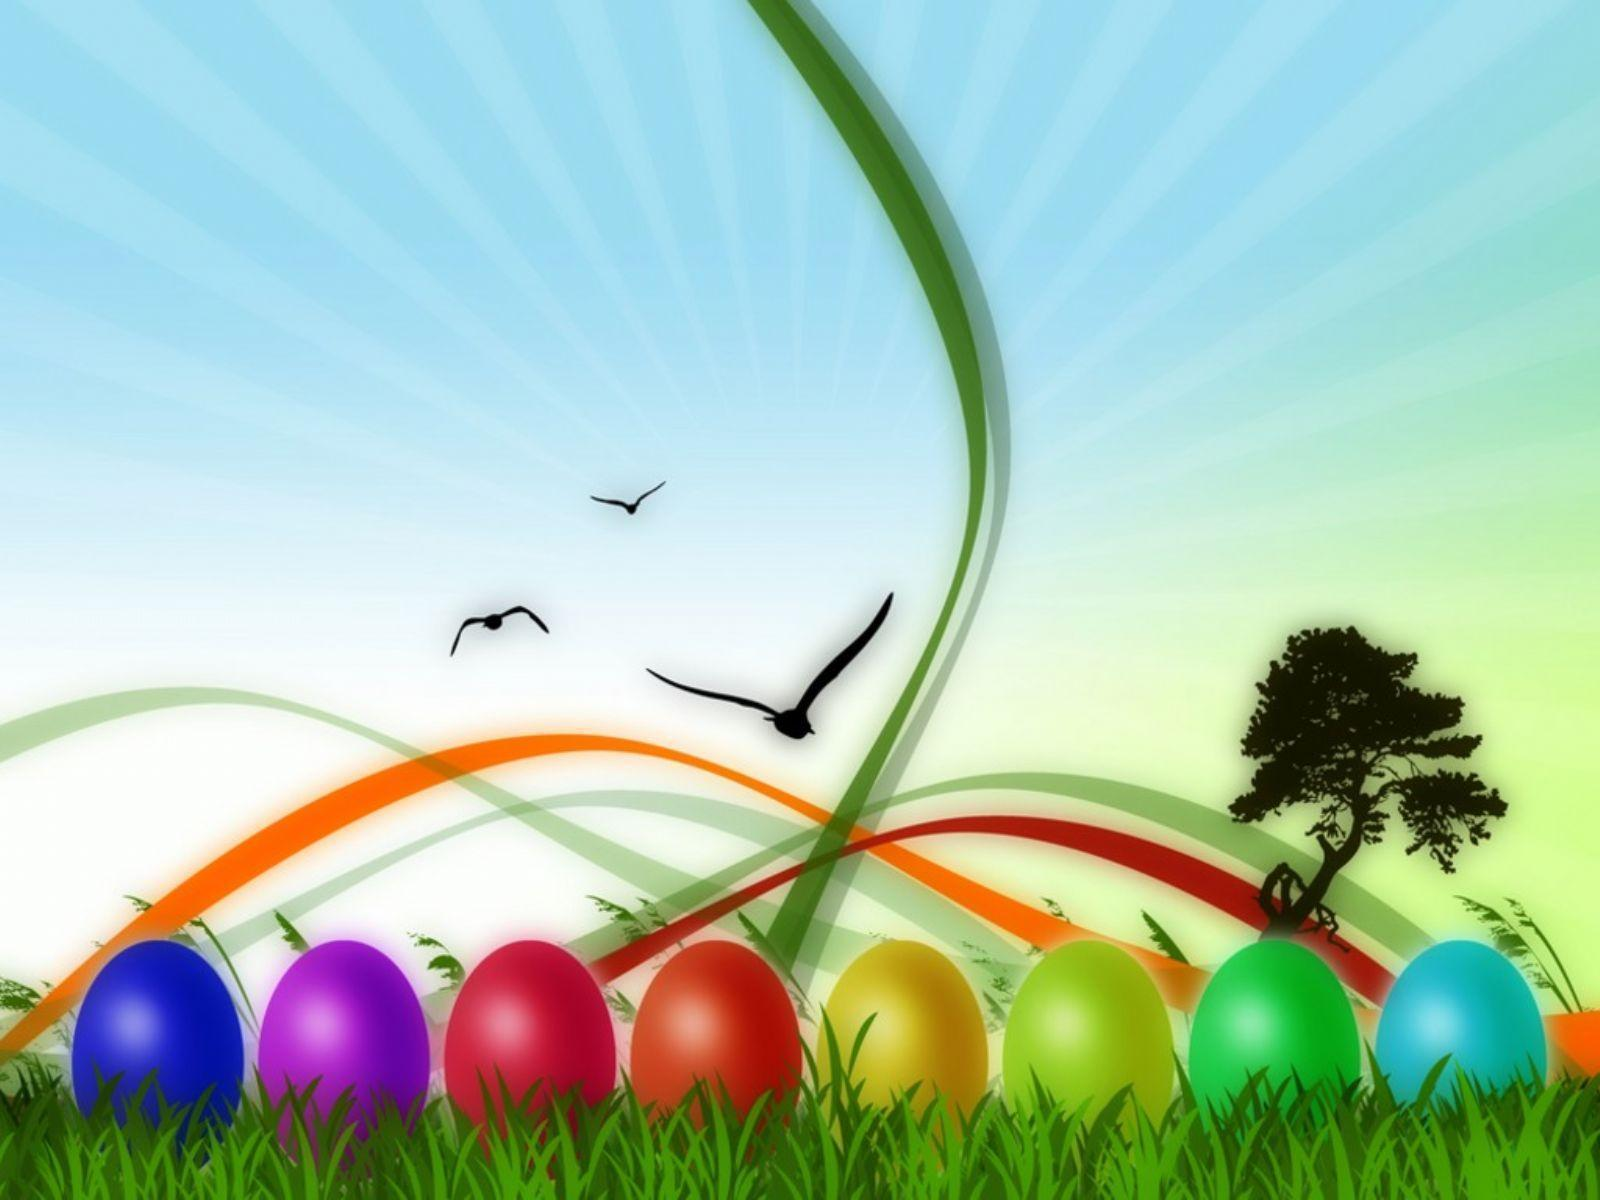 hd wallpapers for desktop: Happy easter wallpapers